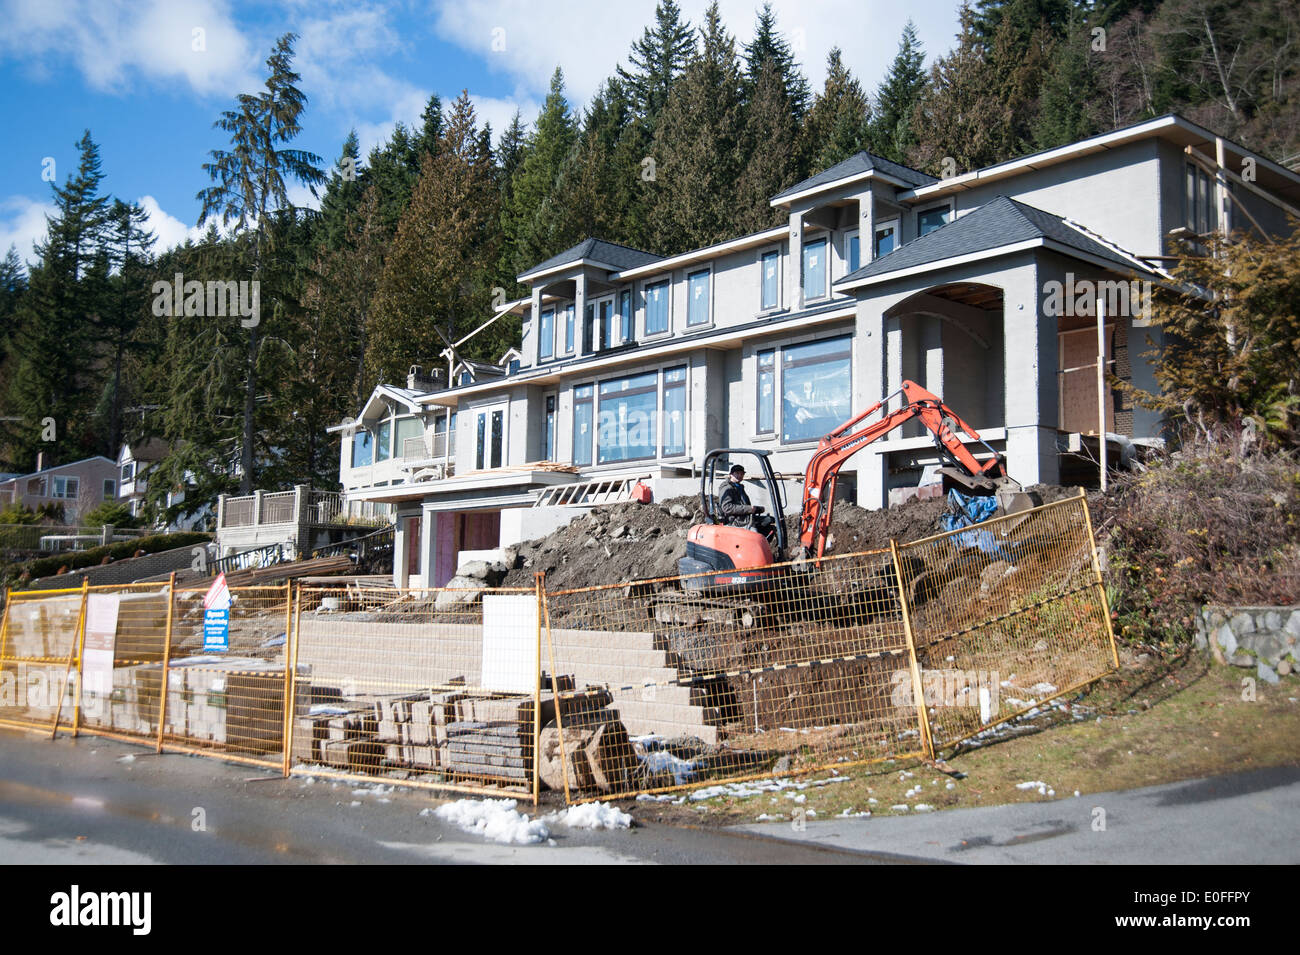 Construction of a large house in the British Properties of West Vancouver, British Columbia, Canada - Stock Image